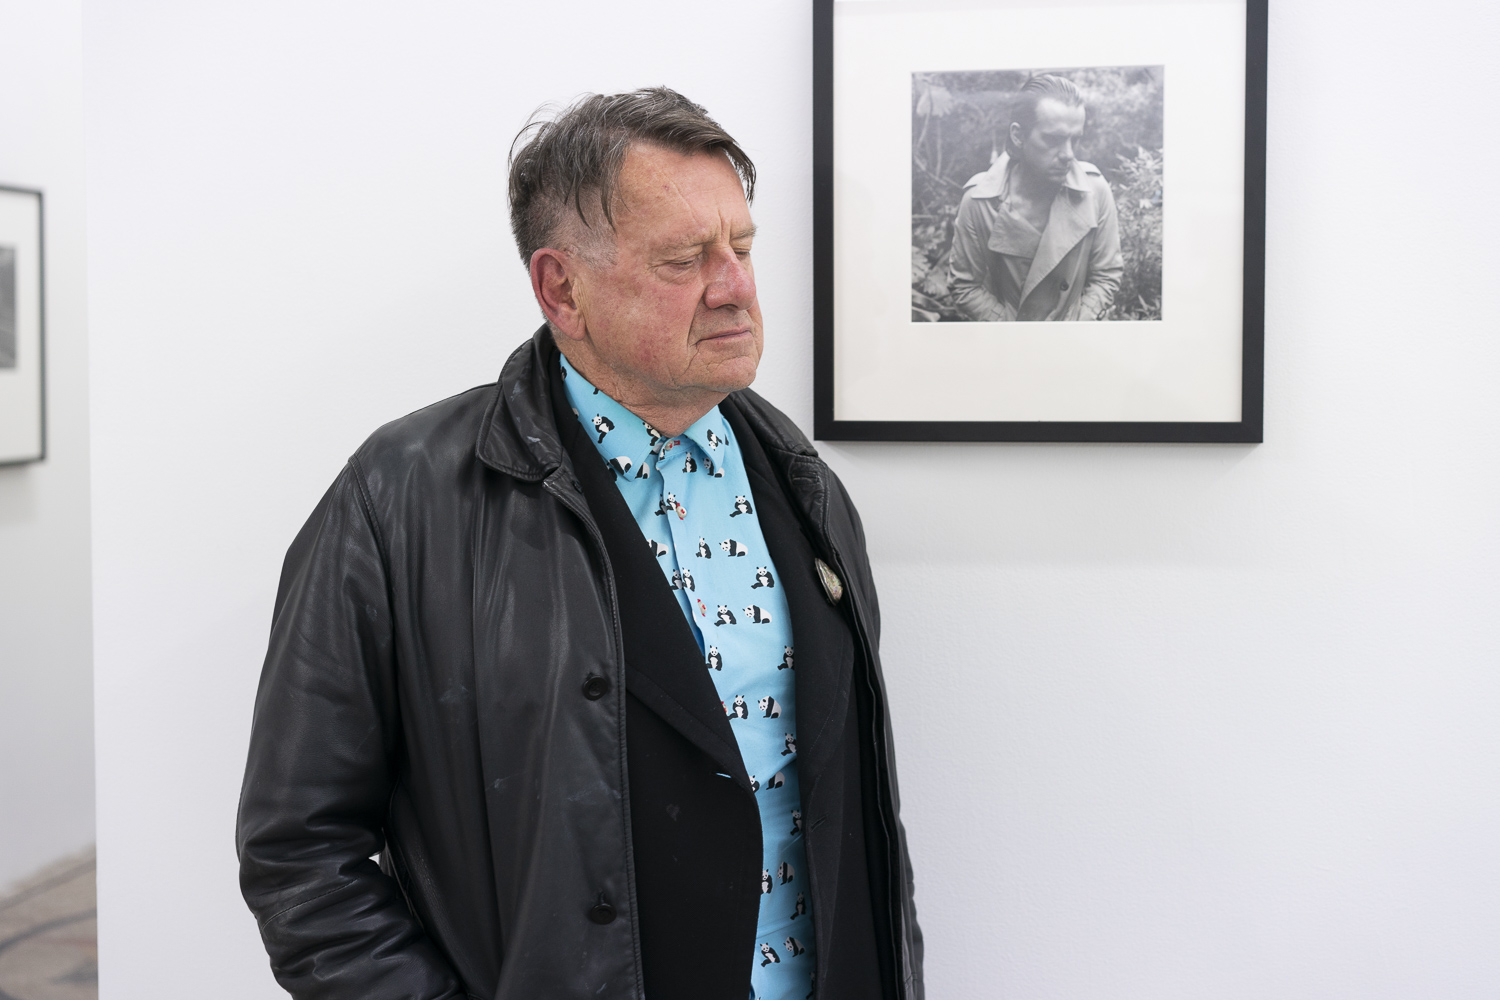 Peter Peryer with one of his best known self-portraits at Bowerbank Ninow, Auckland, 24 May 2018. Photo by Geoff Short.